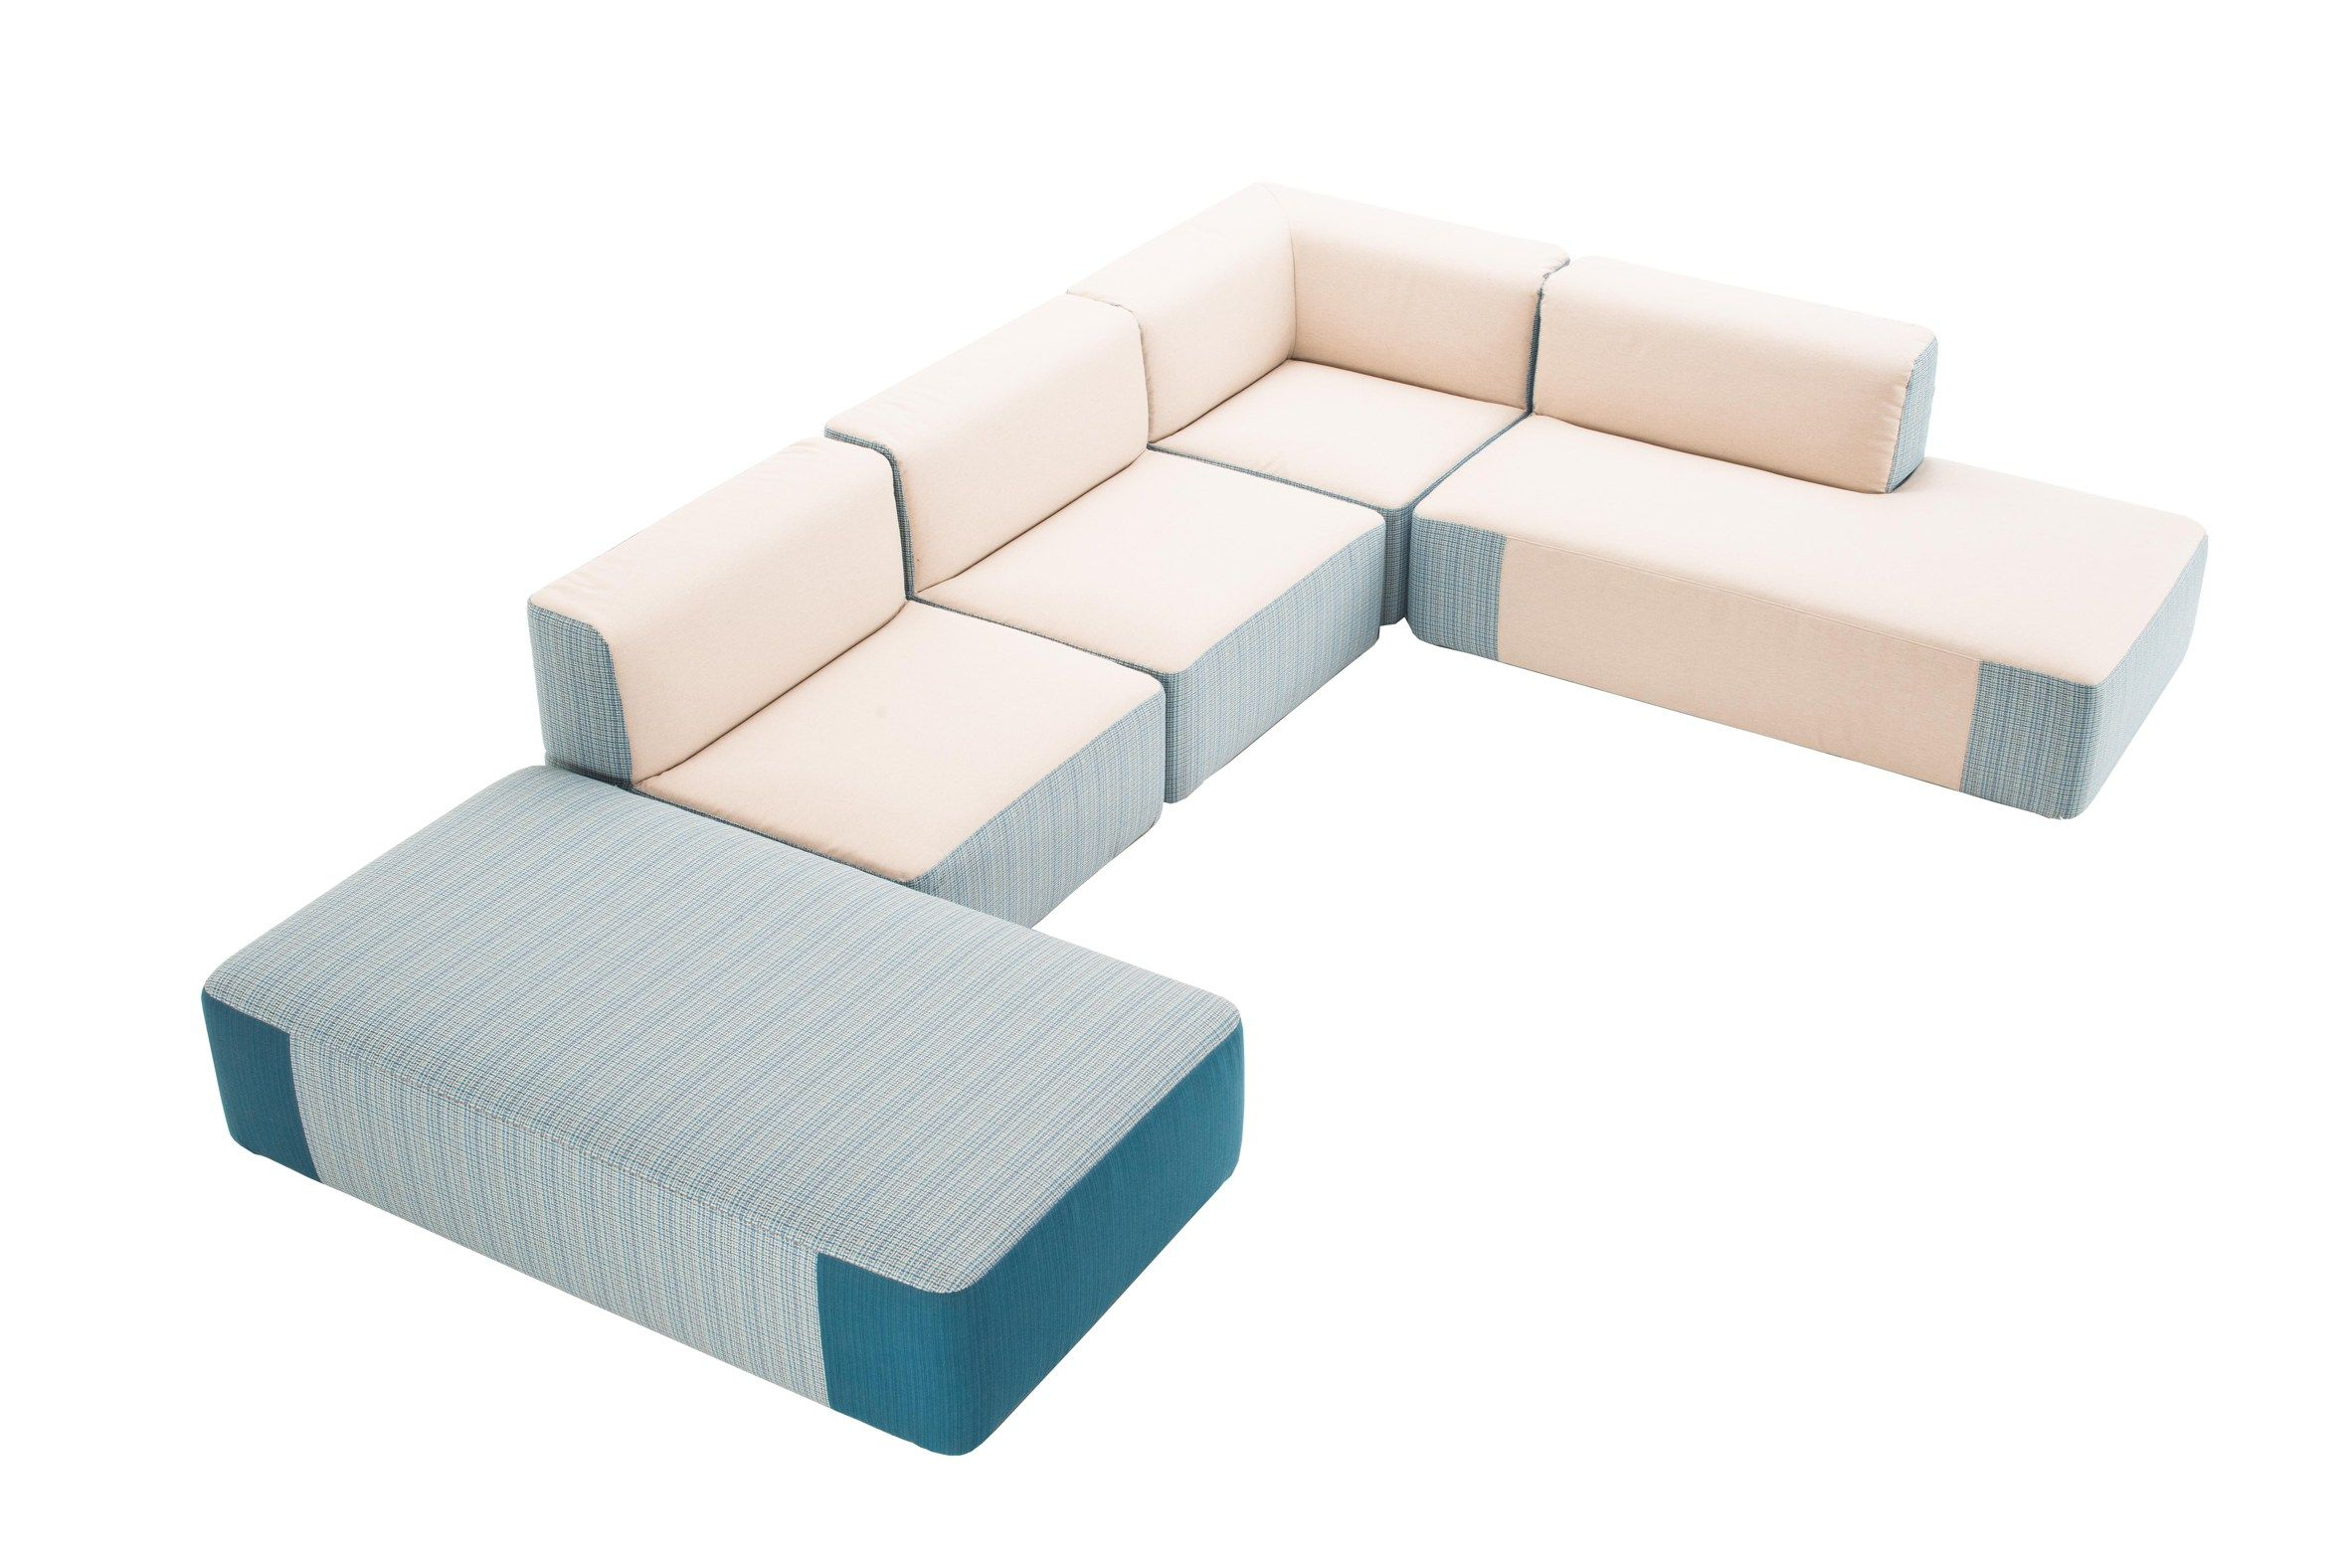 Belt Modular Sectional Sofa By Daniele Lo Scalzo Moscheri For Varaschin